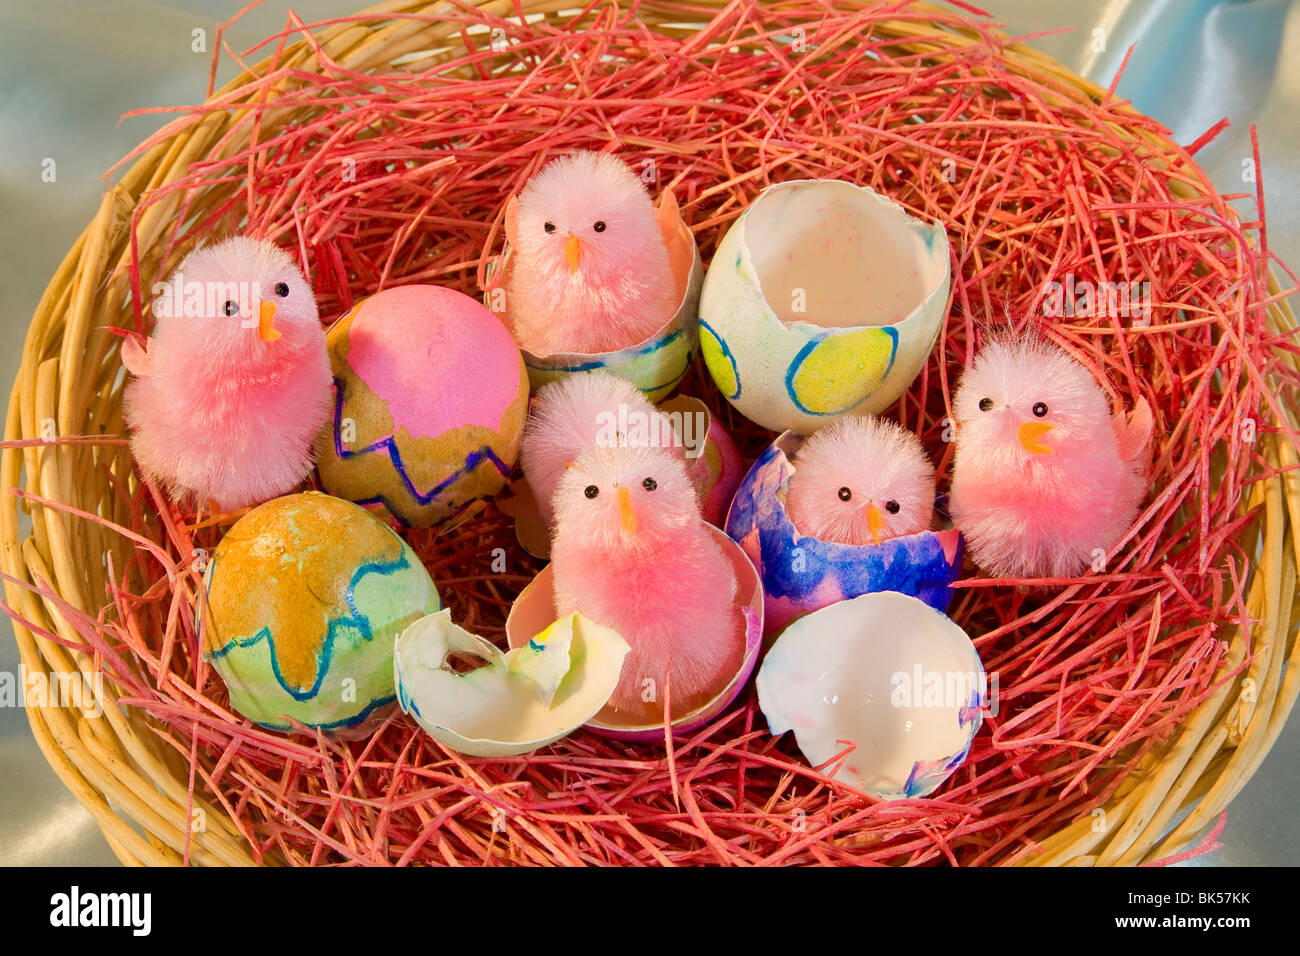 Easter Chick Bunny Egg Eggs Hatch Hatching Basket Stock Photo